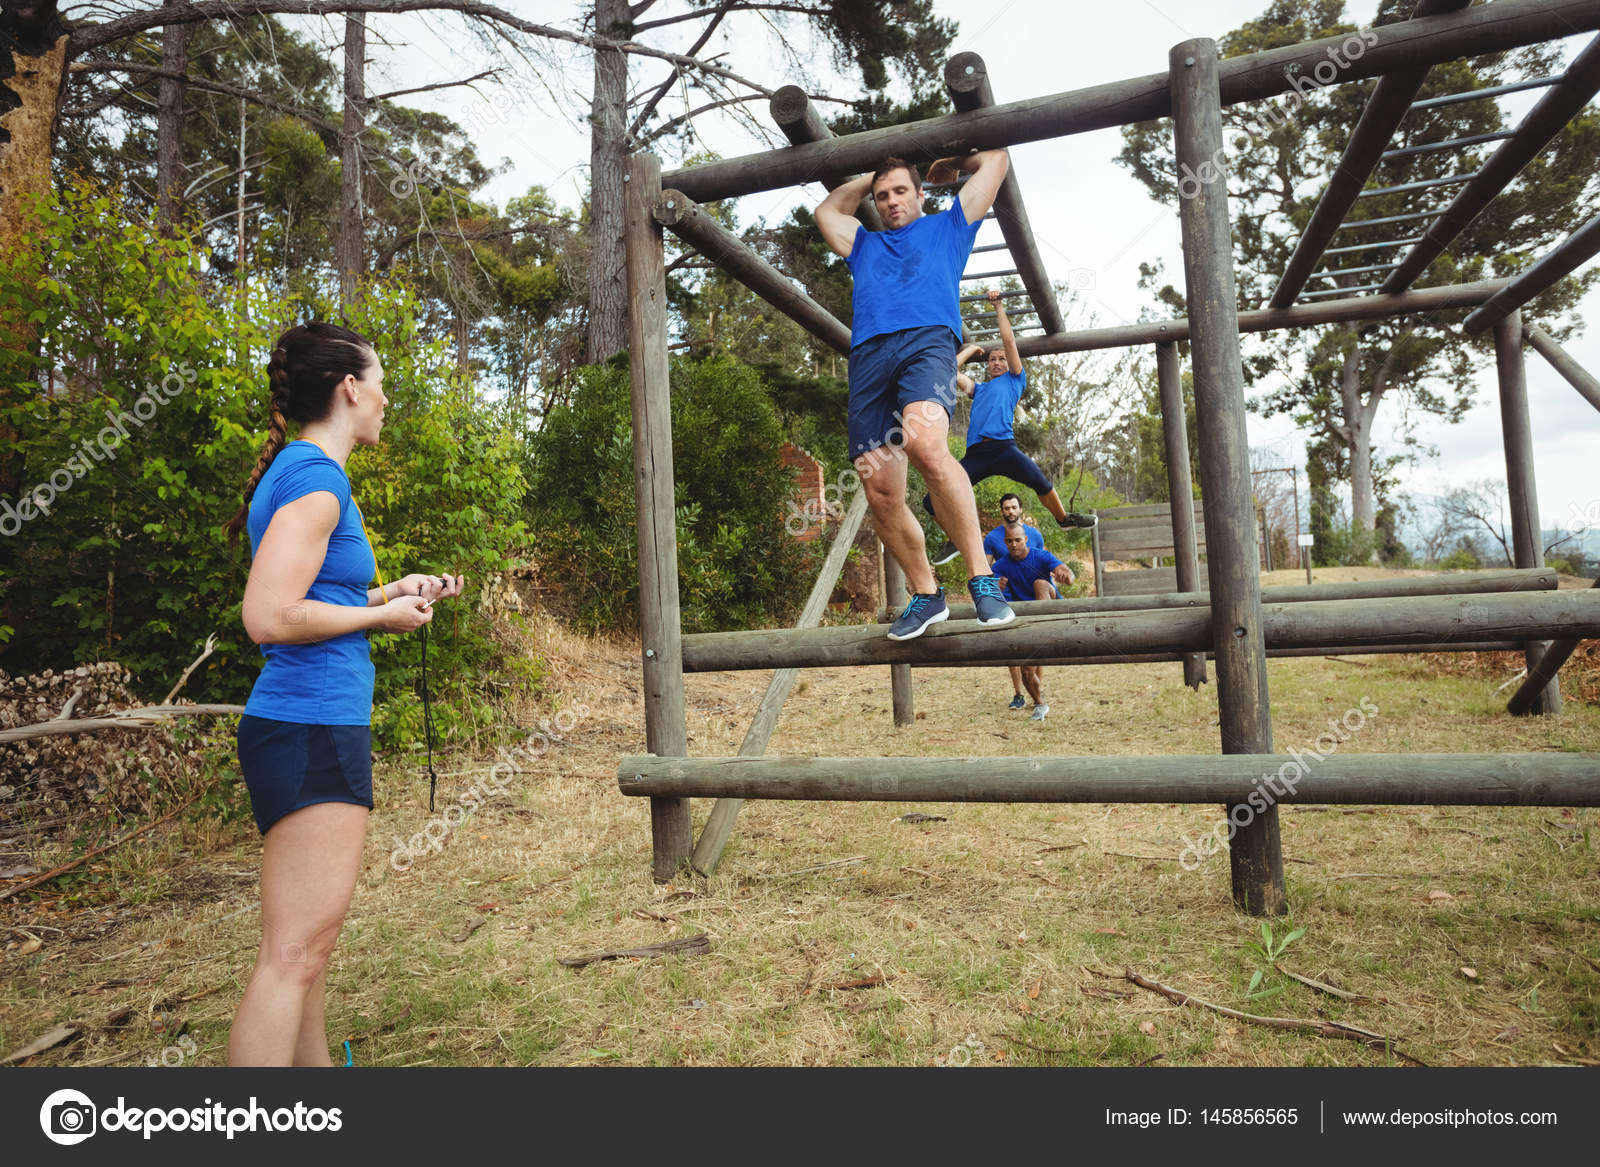 Klettergerüst Monkey Bar Gebraucht : Monkey bars stockfotos bilder alamy